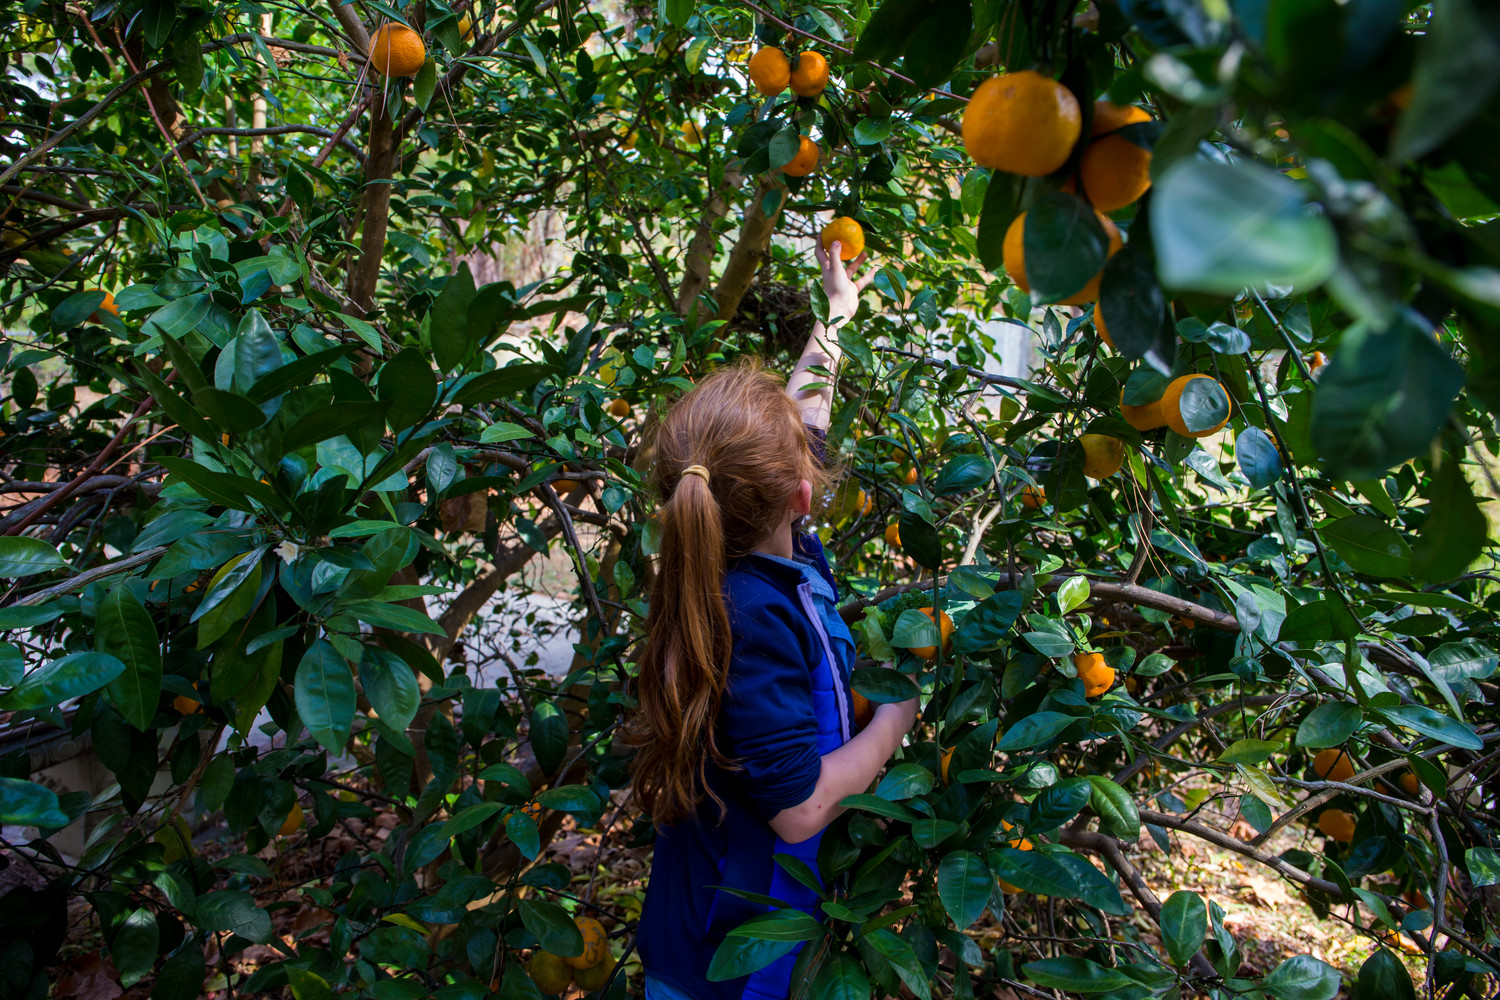 A young girl picking an orange from a tree. Photo taken 12-05-16.